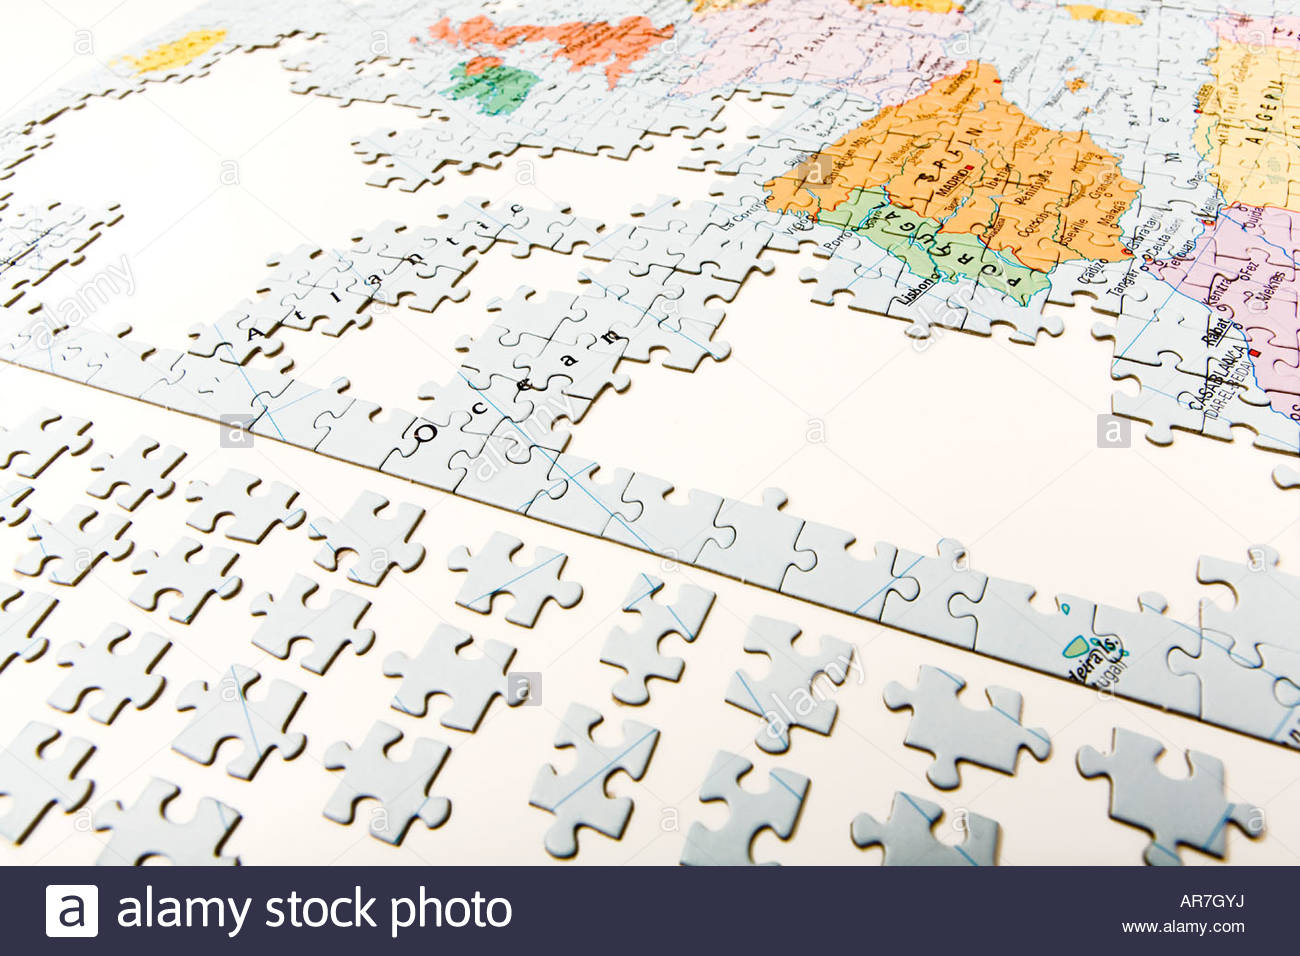 Map puzzle pieces stock photos map puzzle pieces stock images alamy incomplete jigsaw puzzle stock image gumiabroncs Gallery